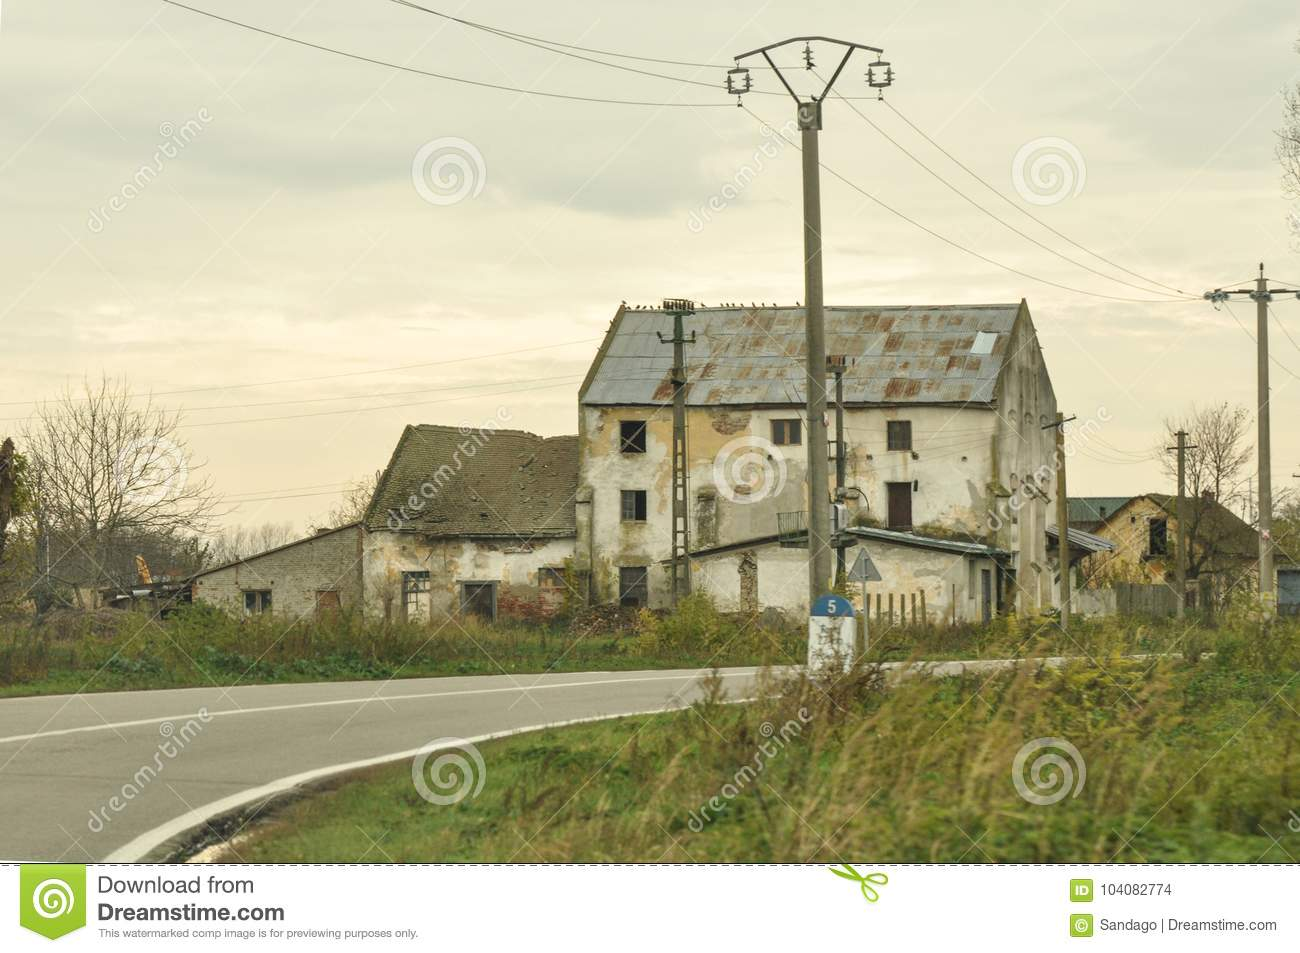 Abandoned house stock photo  Image of danger, decay - 104082774